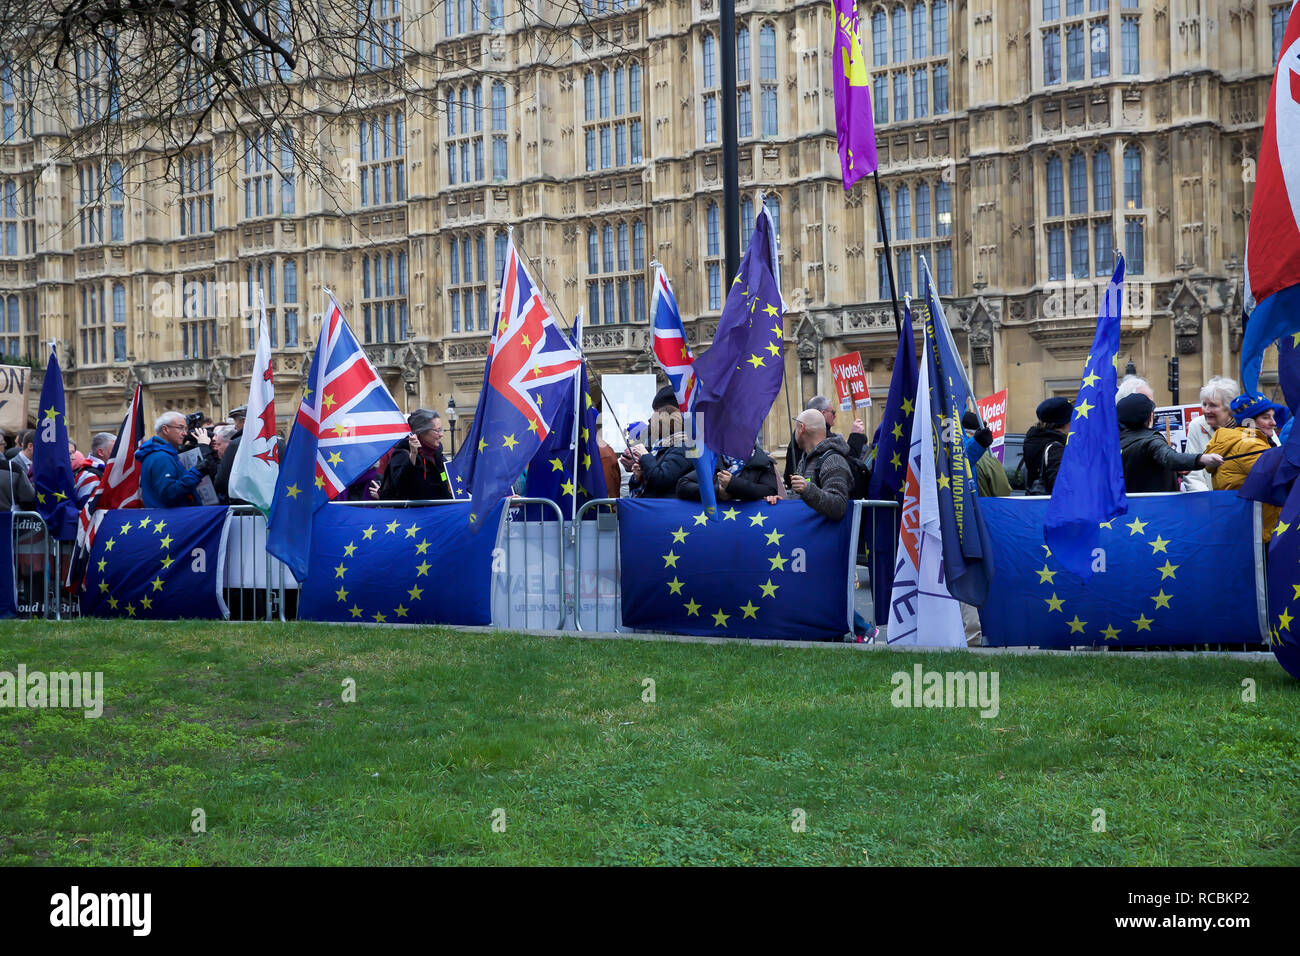 London, UK. 15th Jan, 2019. Protesters gather on College Green outside the Houses of Parliament on Brexit vote D-day. The vote takes place this evening despite a series of last-minute appeals to rebel Tory MPs to back her EU withdrawal agreement. A defeat is likely to be followed by Jeremy Corbyn calling a vote of no confidence in the government. Credit: Keith Larby/Alamy Live News - Stock Image